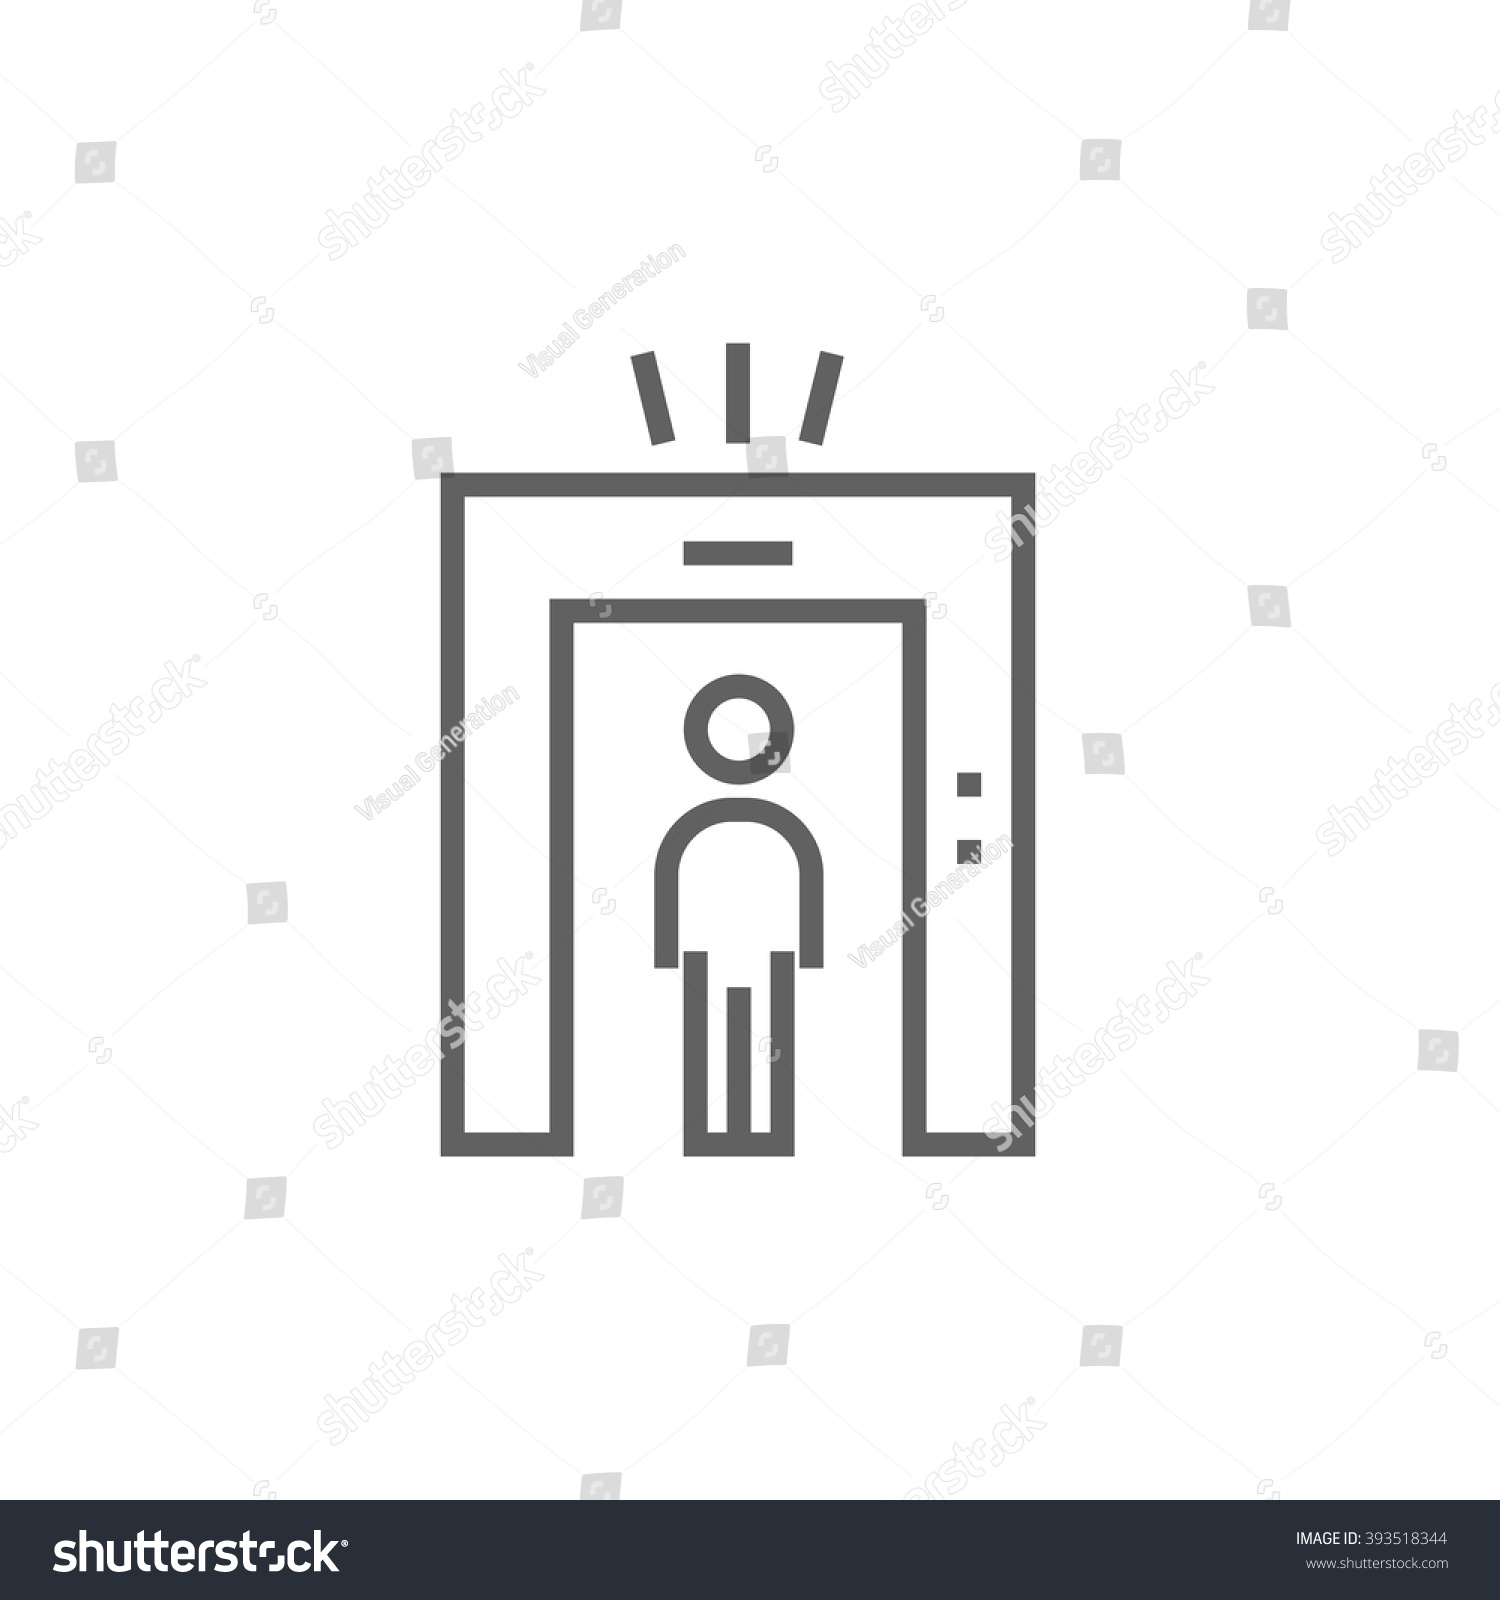 Jew Detector: Man Going Through Metal Detector Gate Stock Vector